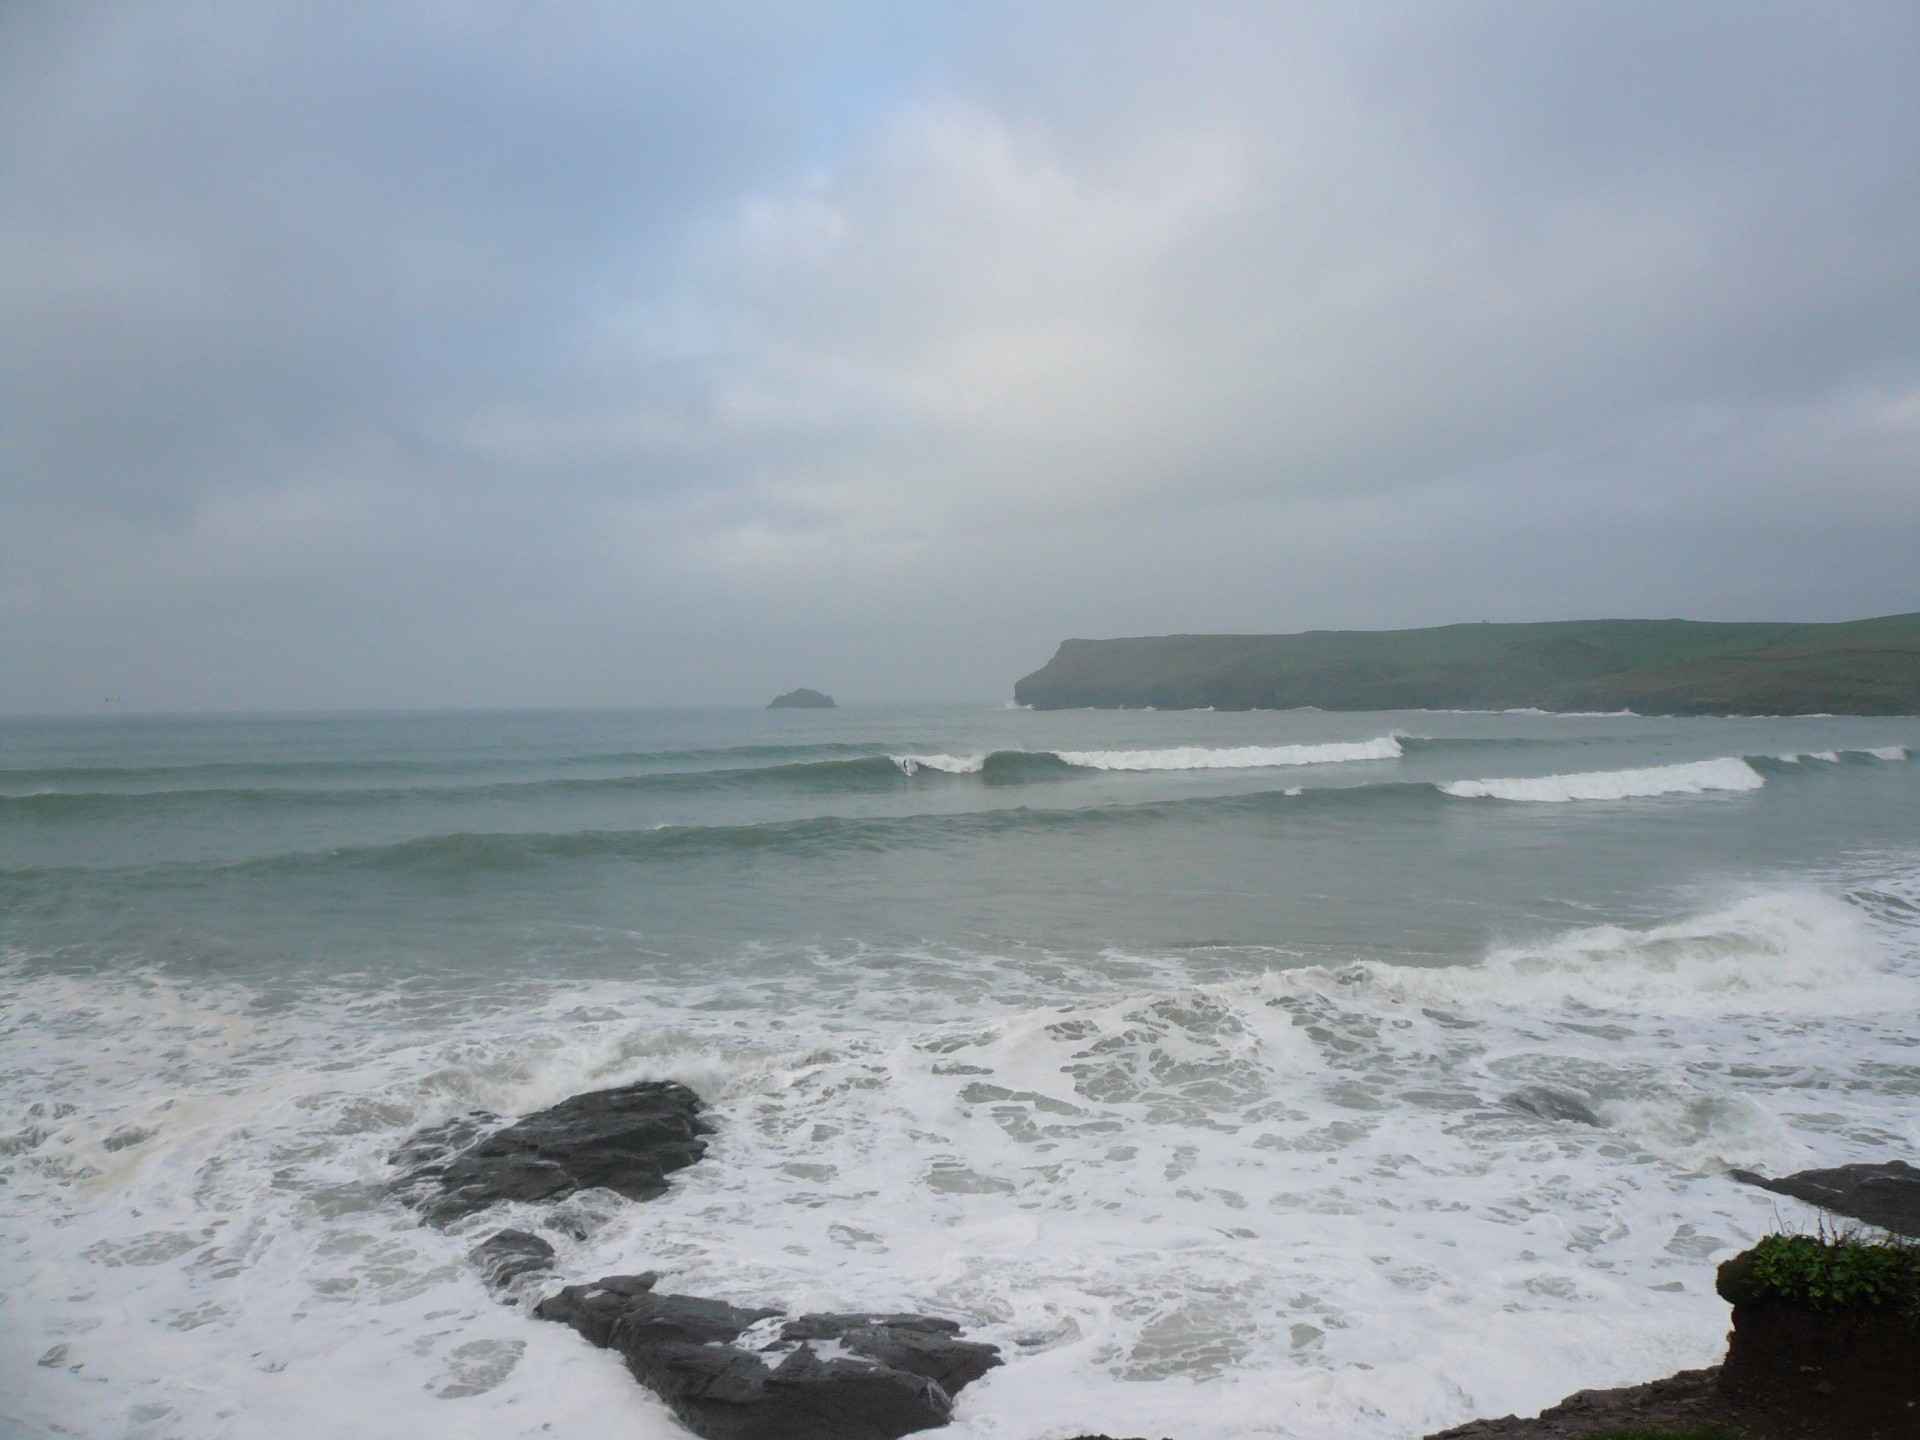 JP1's photo of Polzeath